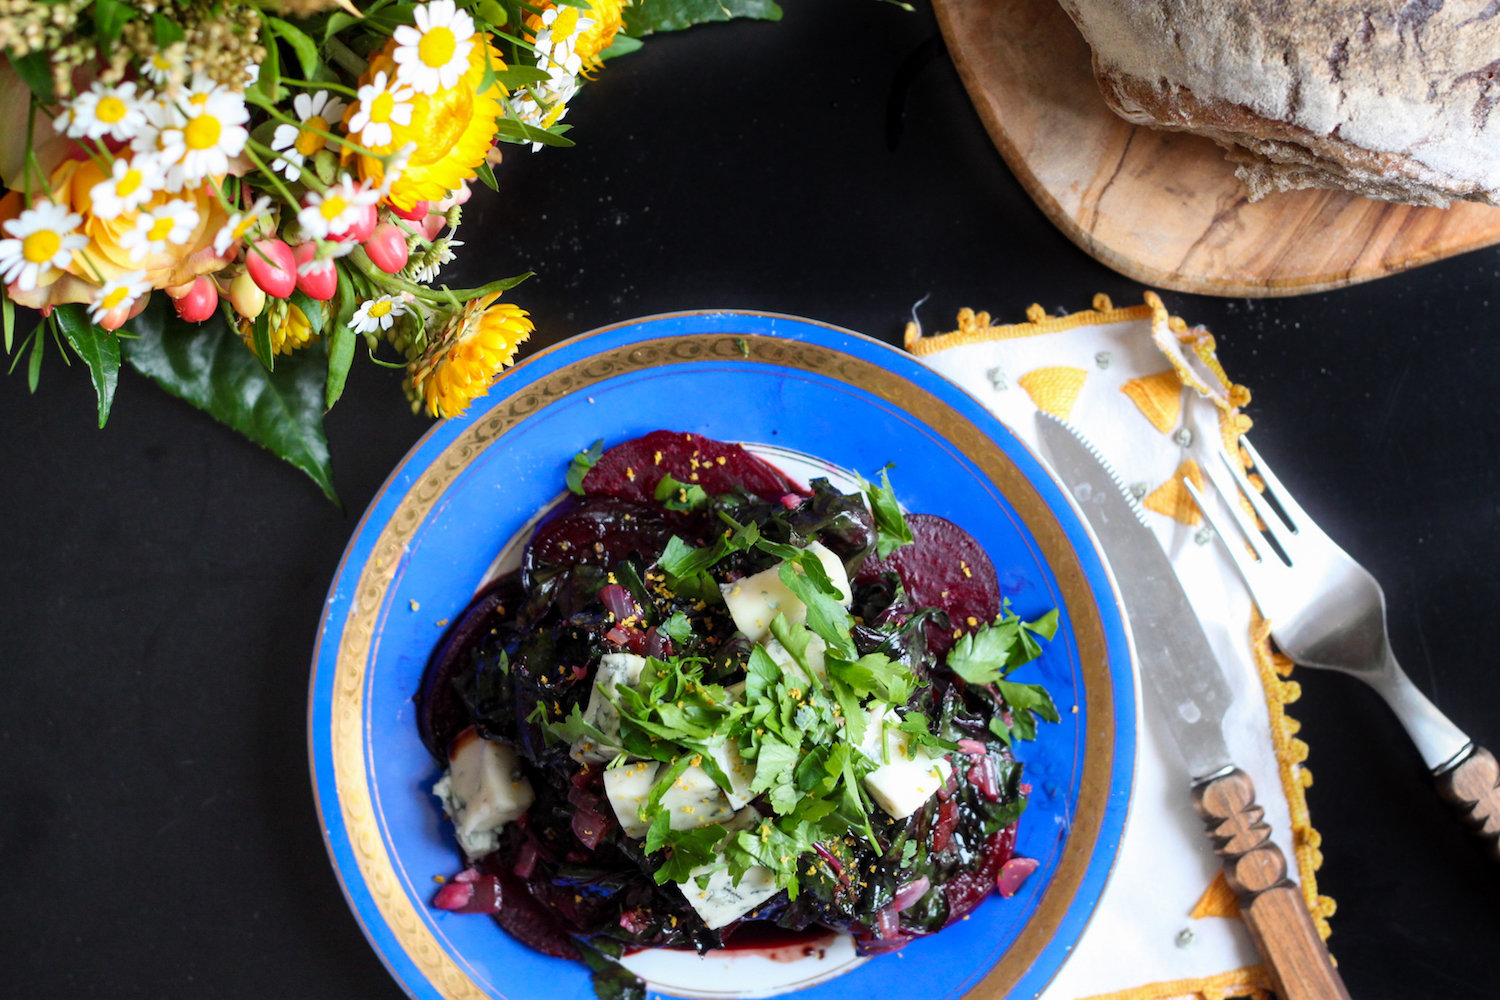 Beet salad with greens, garlic, and gorgonzola (Eat Me. Drink Me.)